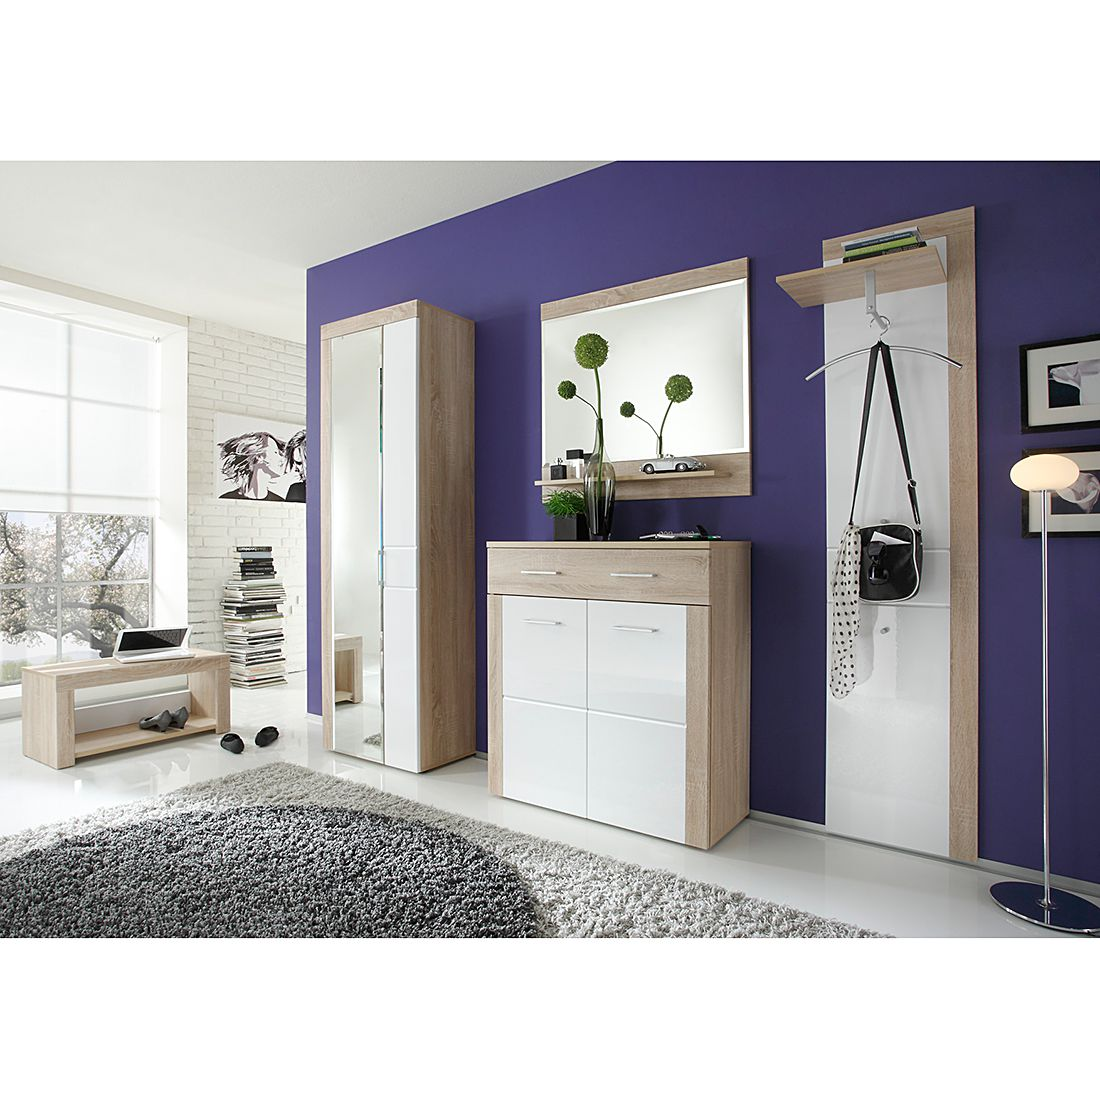 garderobe aalborg 5 teilig eiche dekor hochglanz wei. Black Bedroom Furniture Sets. Home Design Ideas